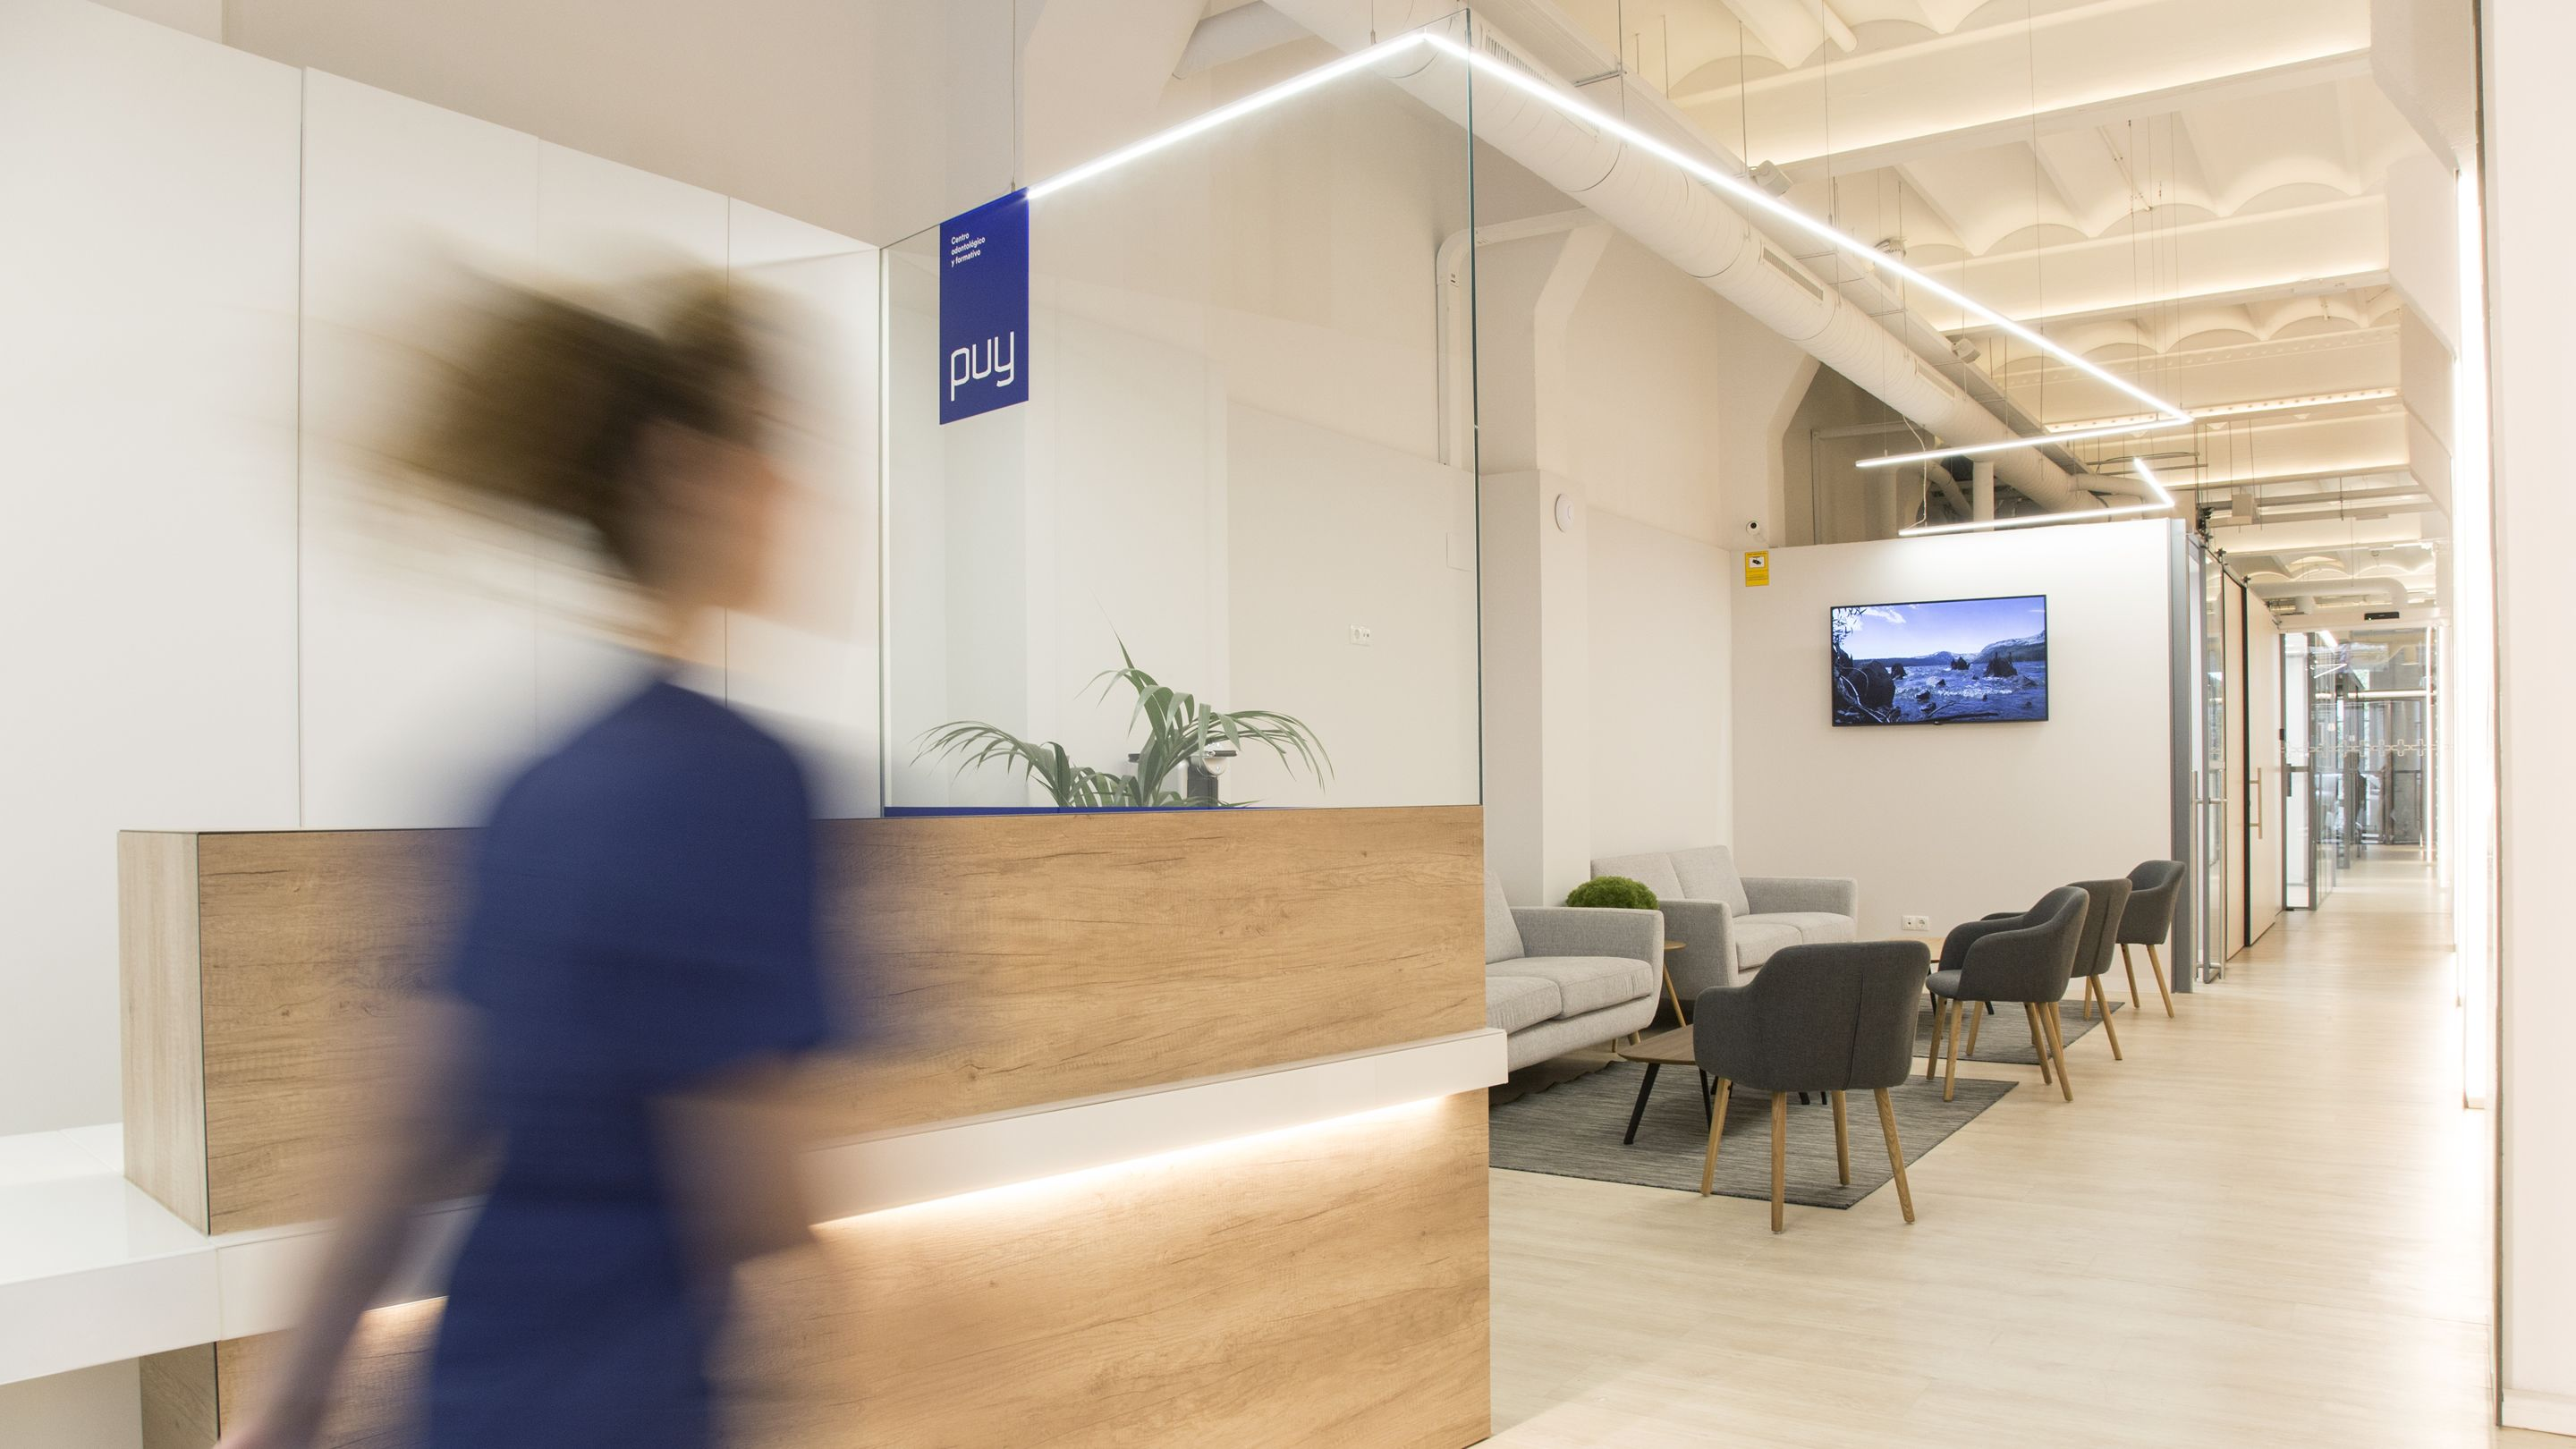 Puy - Dental clinic in Barcelona | Excellence in dentistry